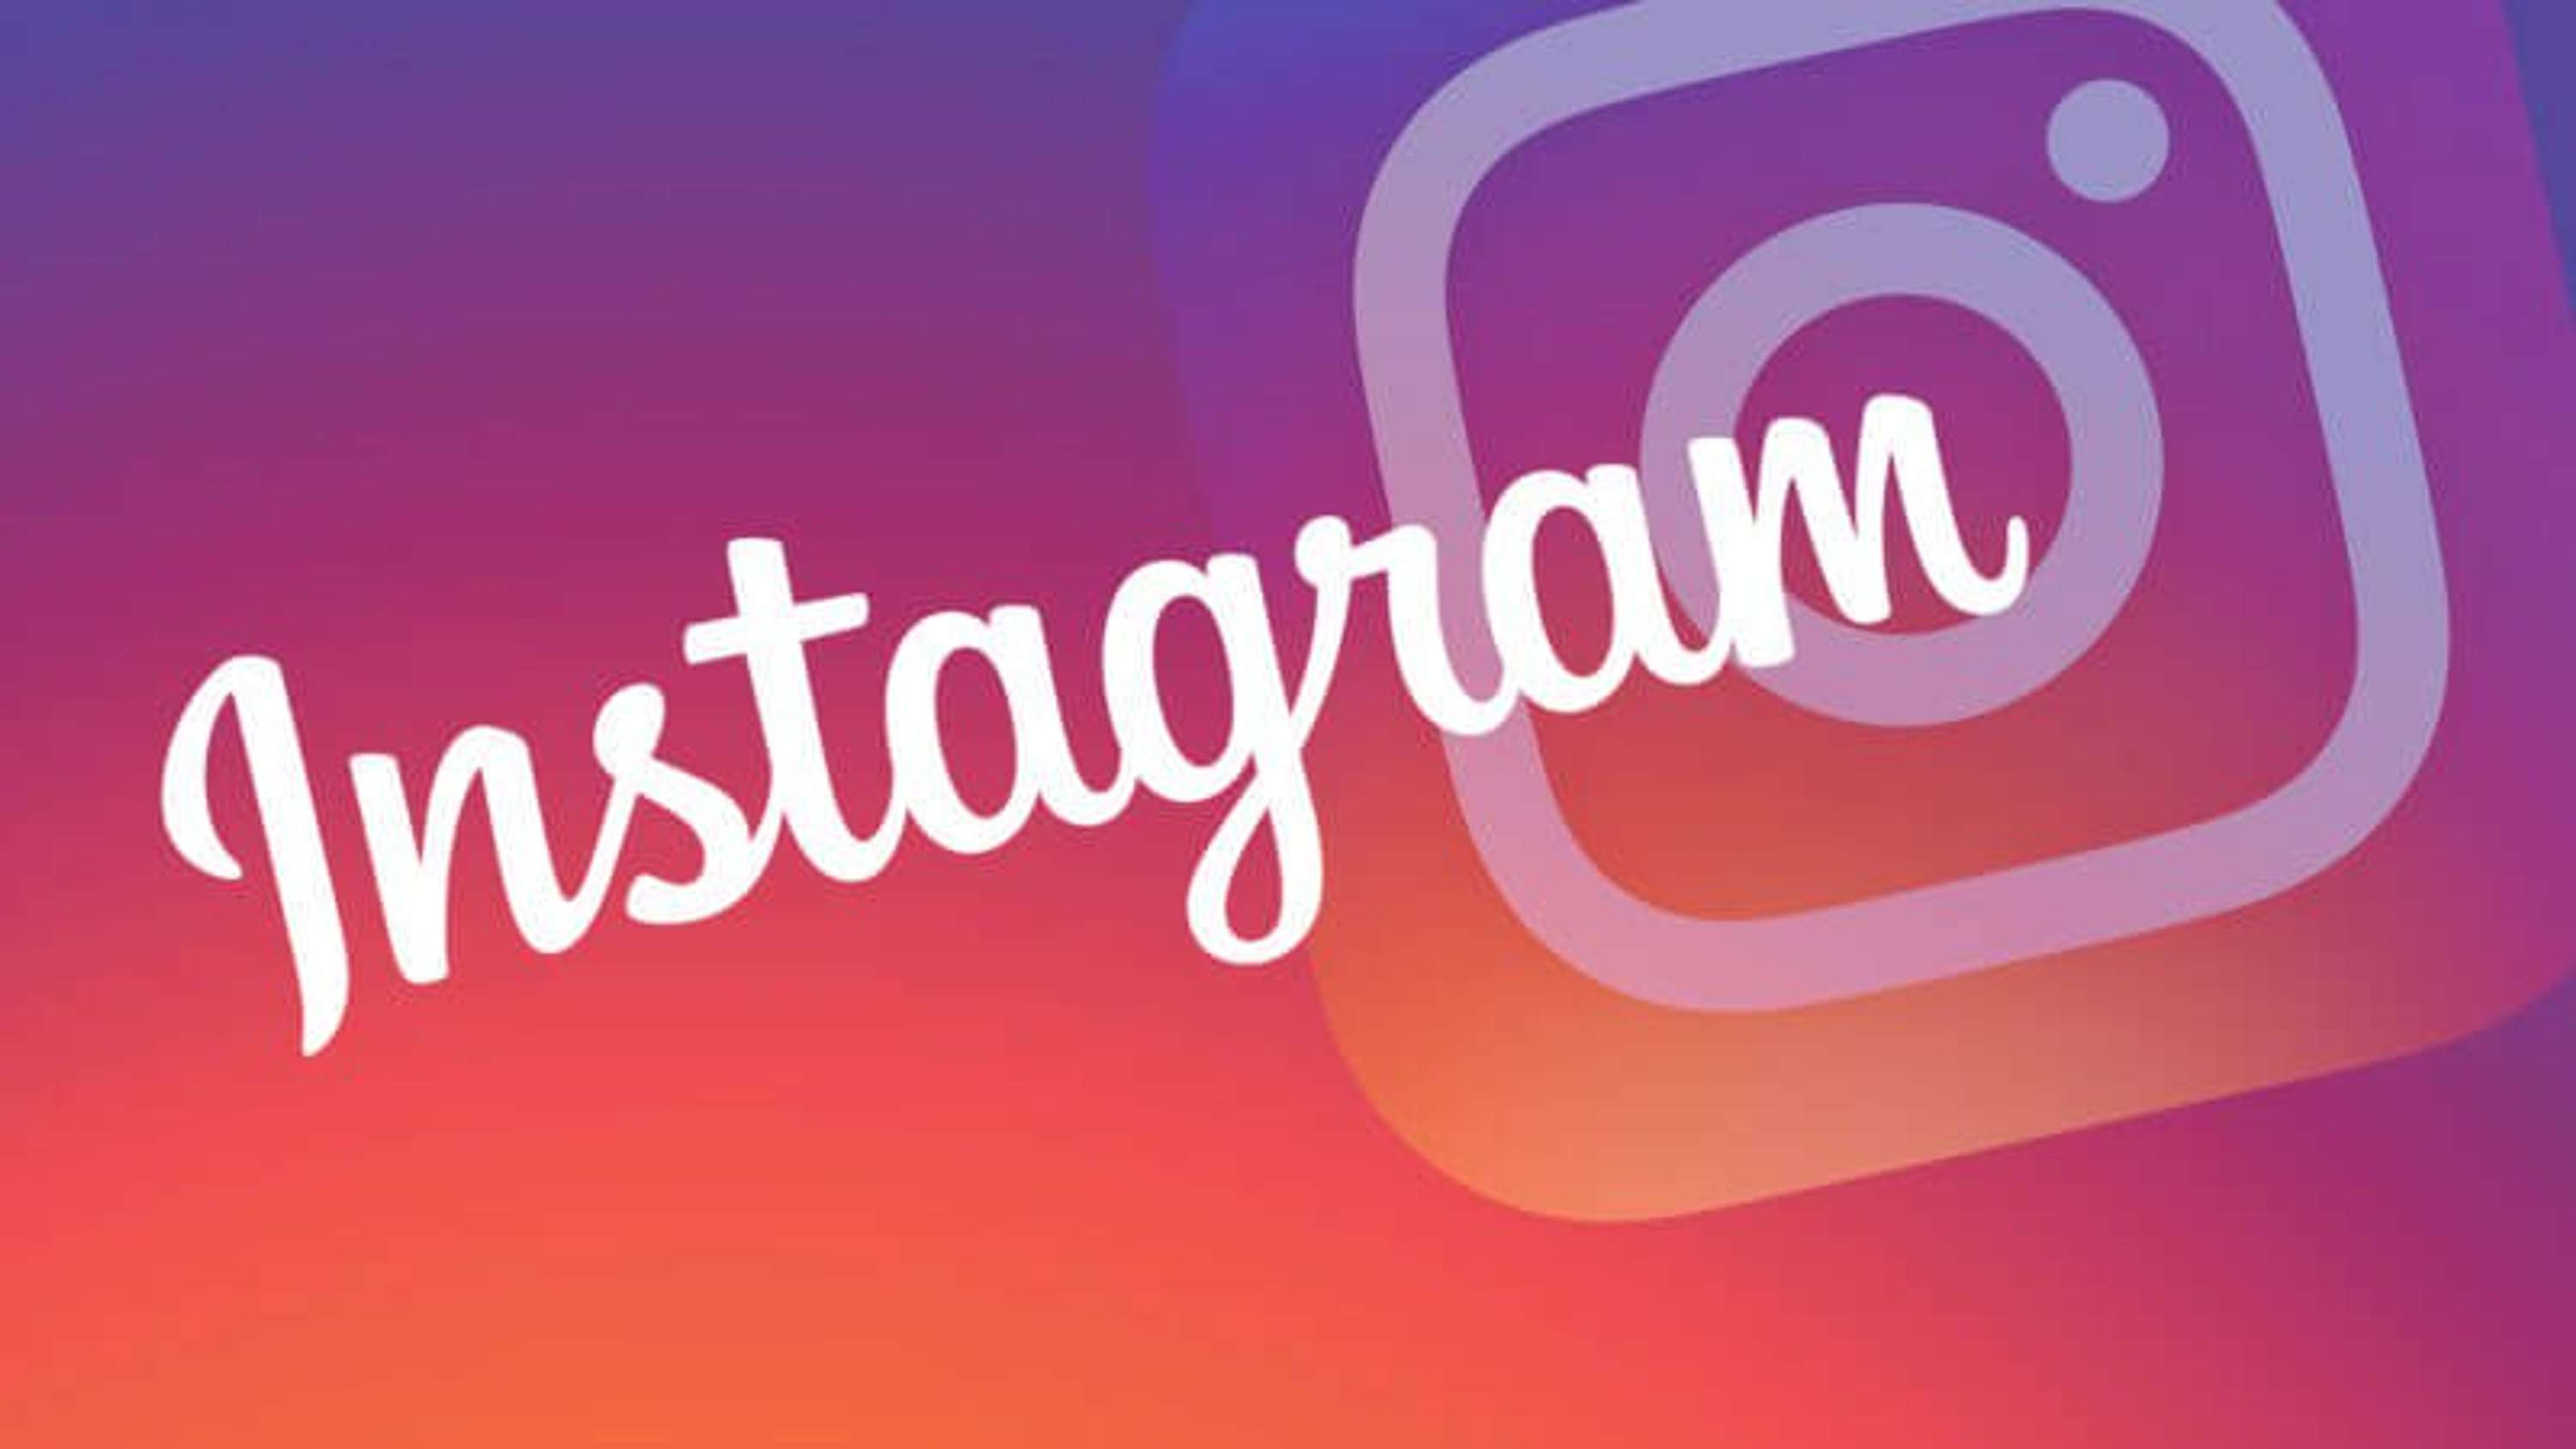 Design An Application For Free Instagram Followers | The Dots